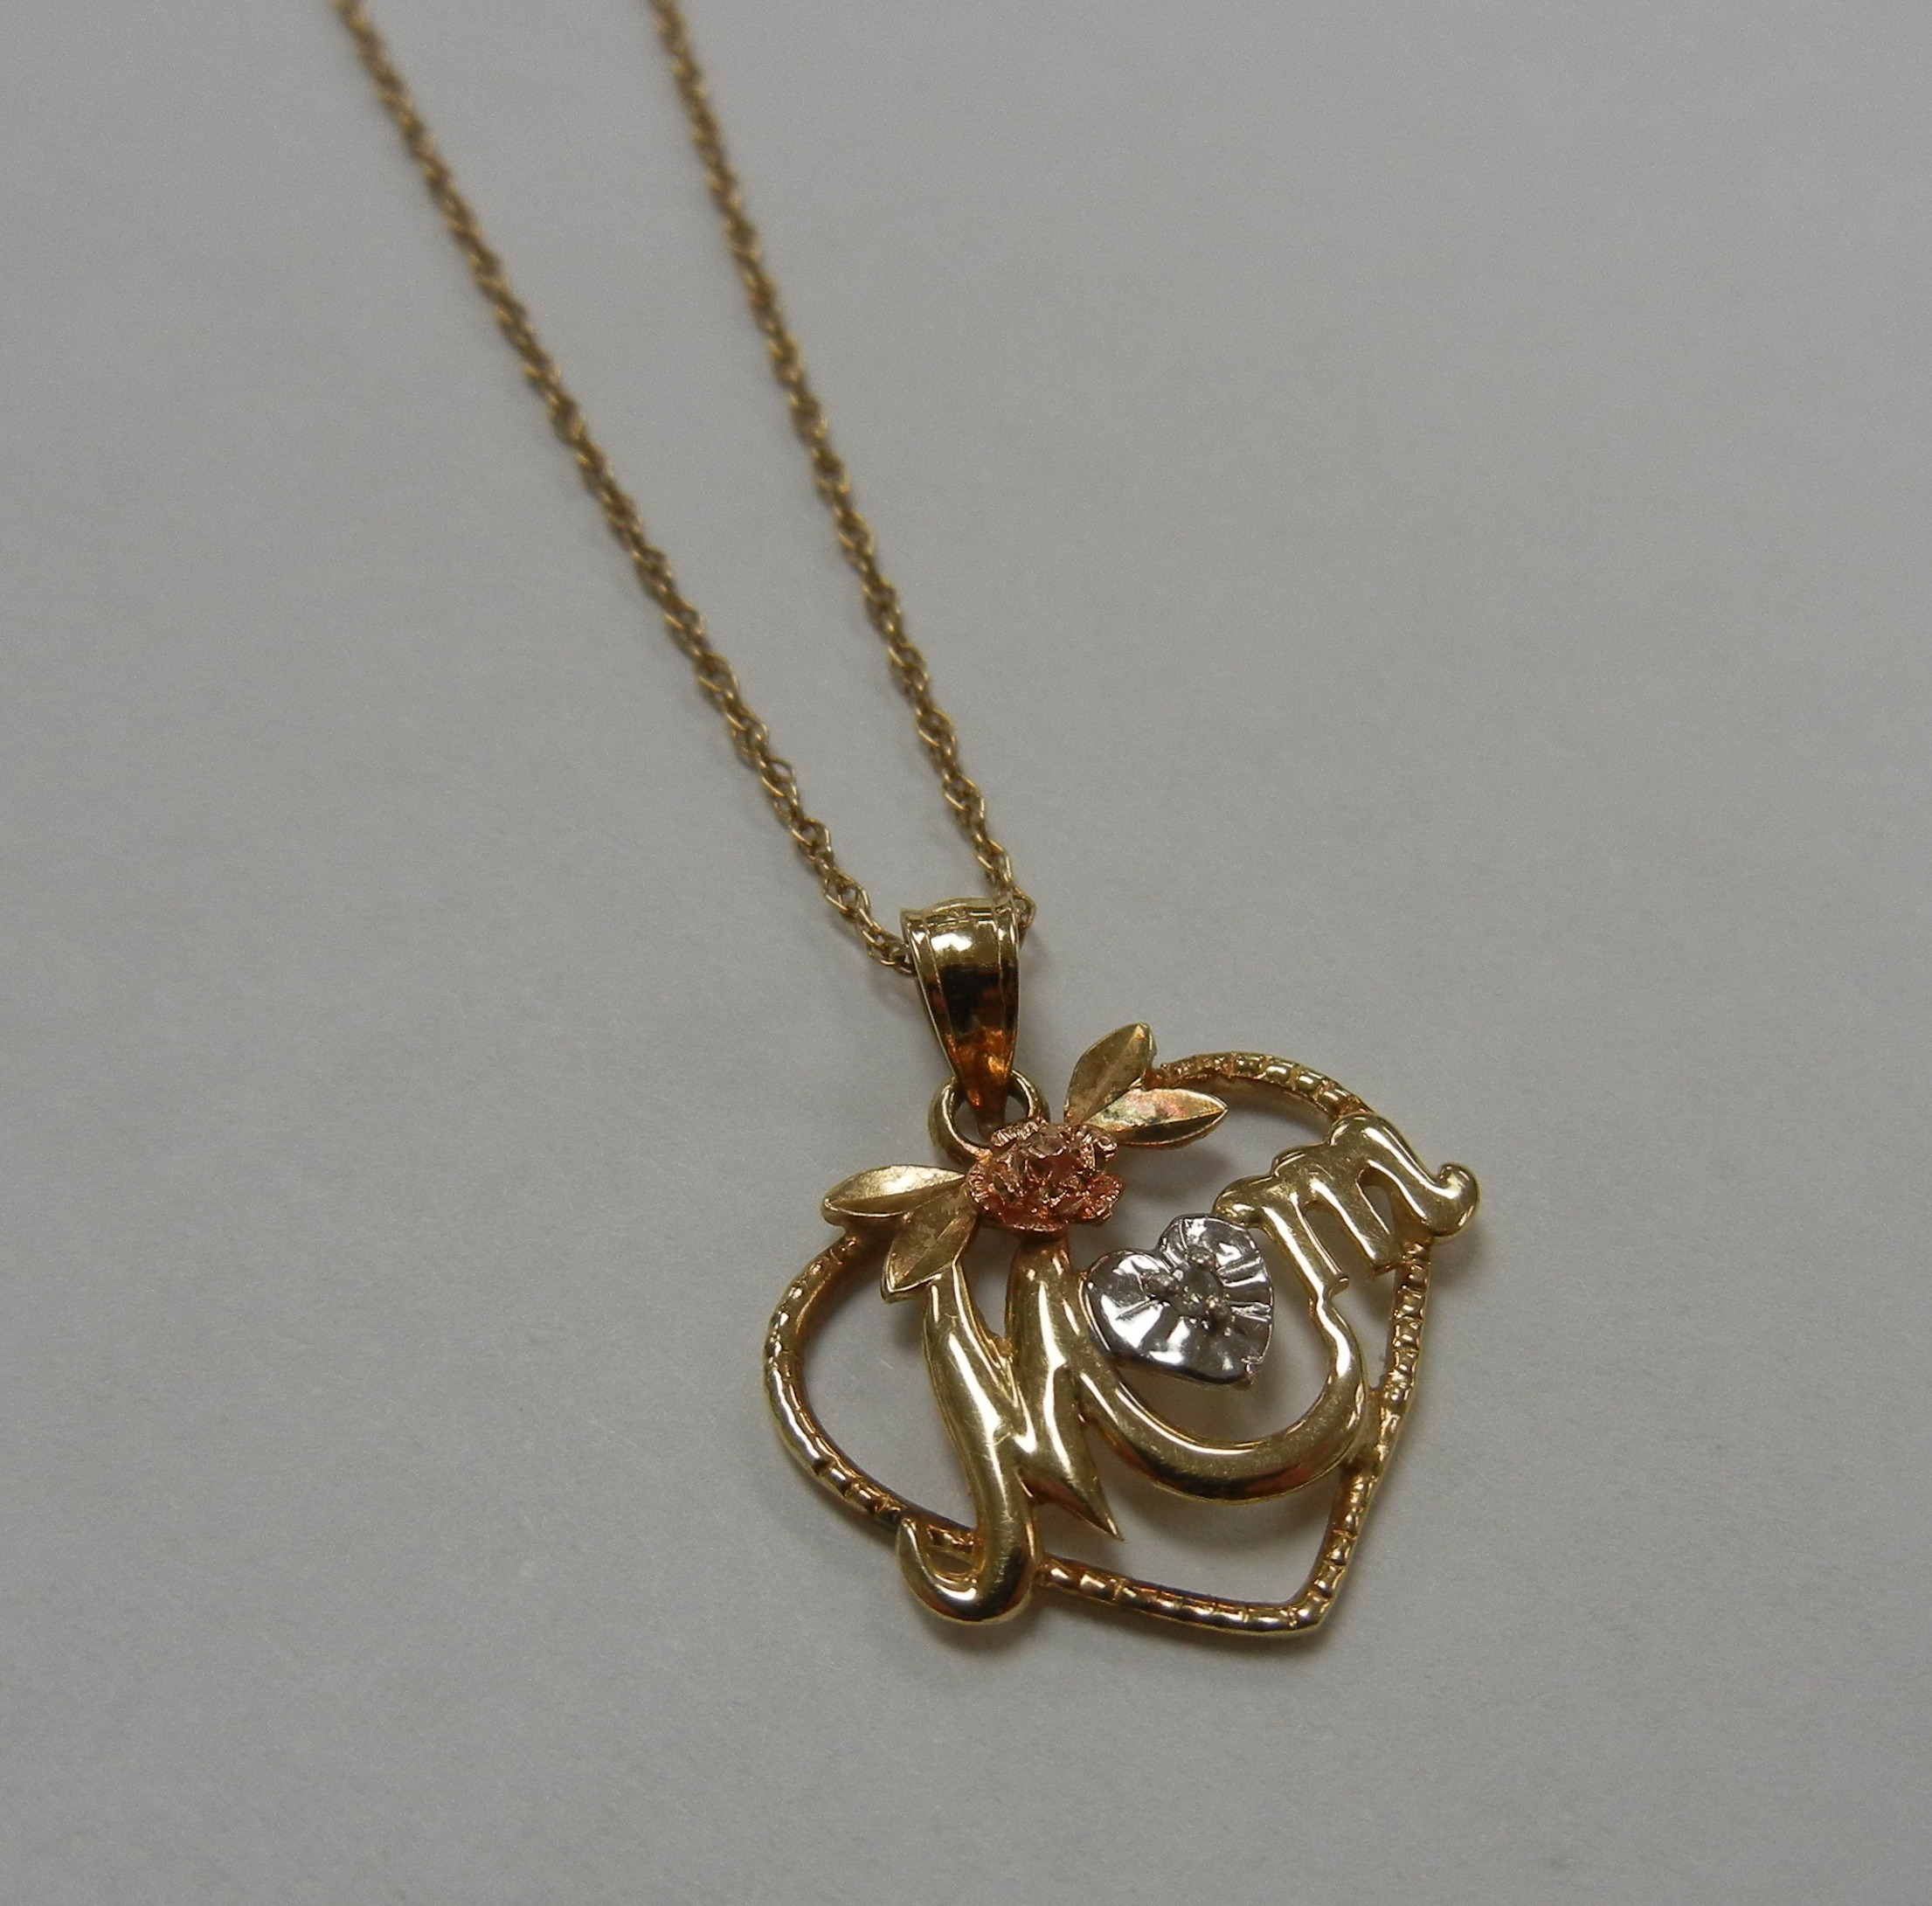 14 KT YELLOW GOLD CHAIN WITH